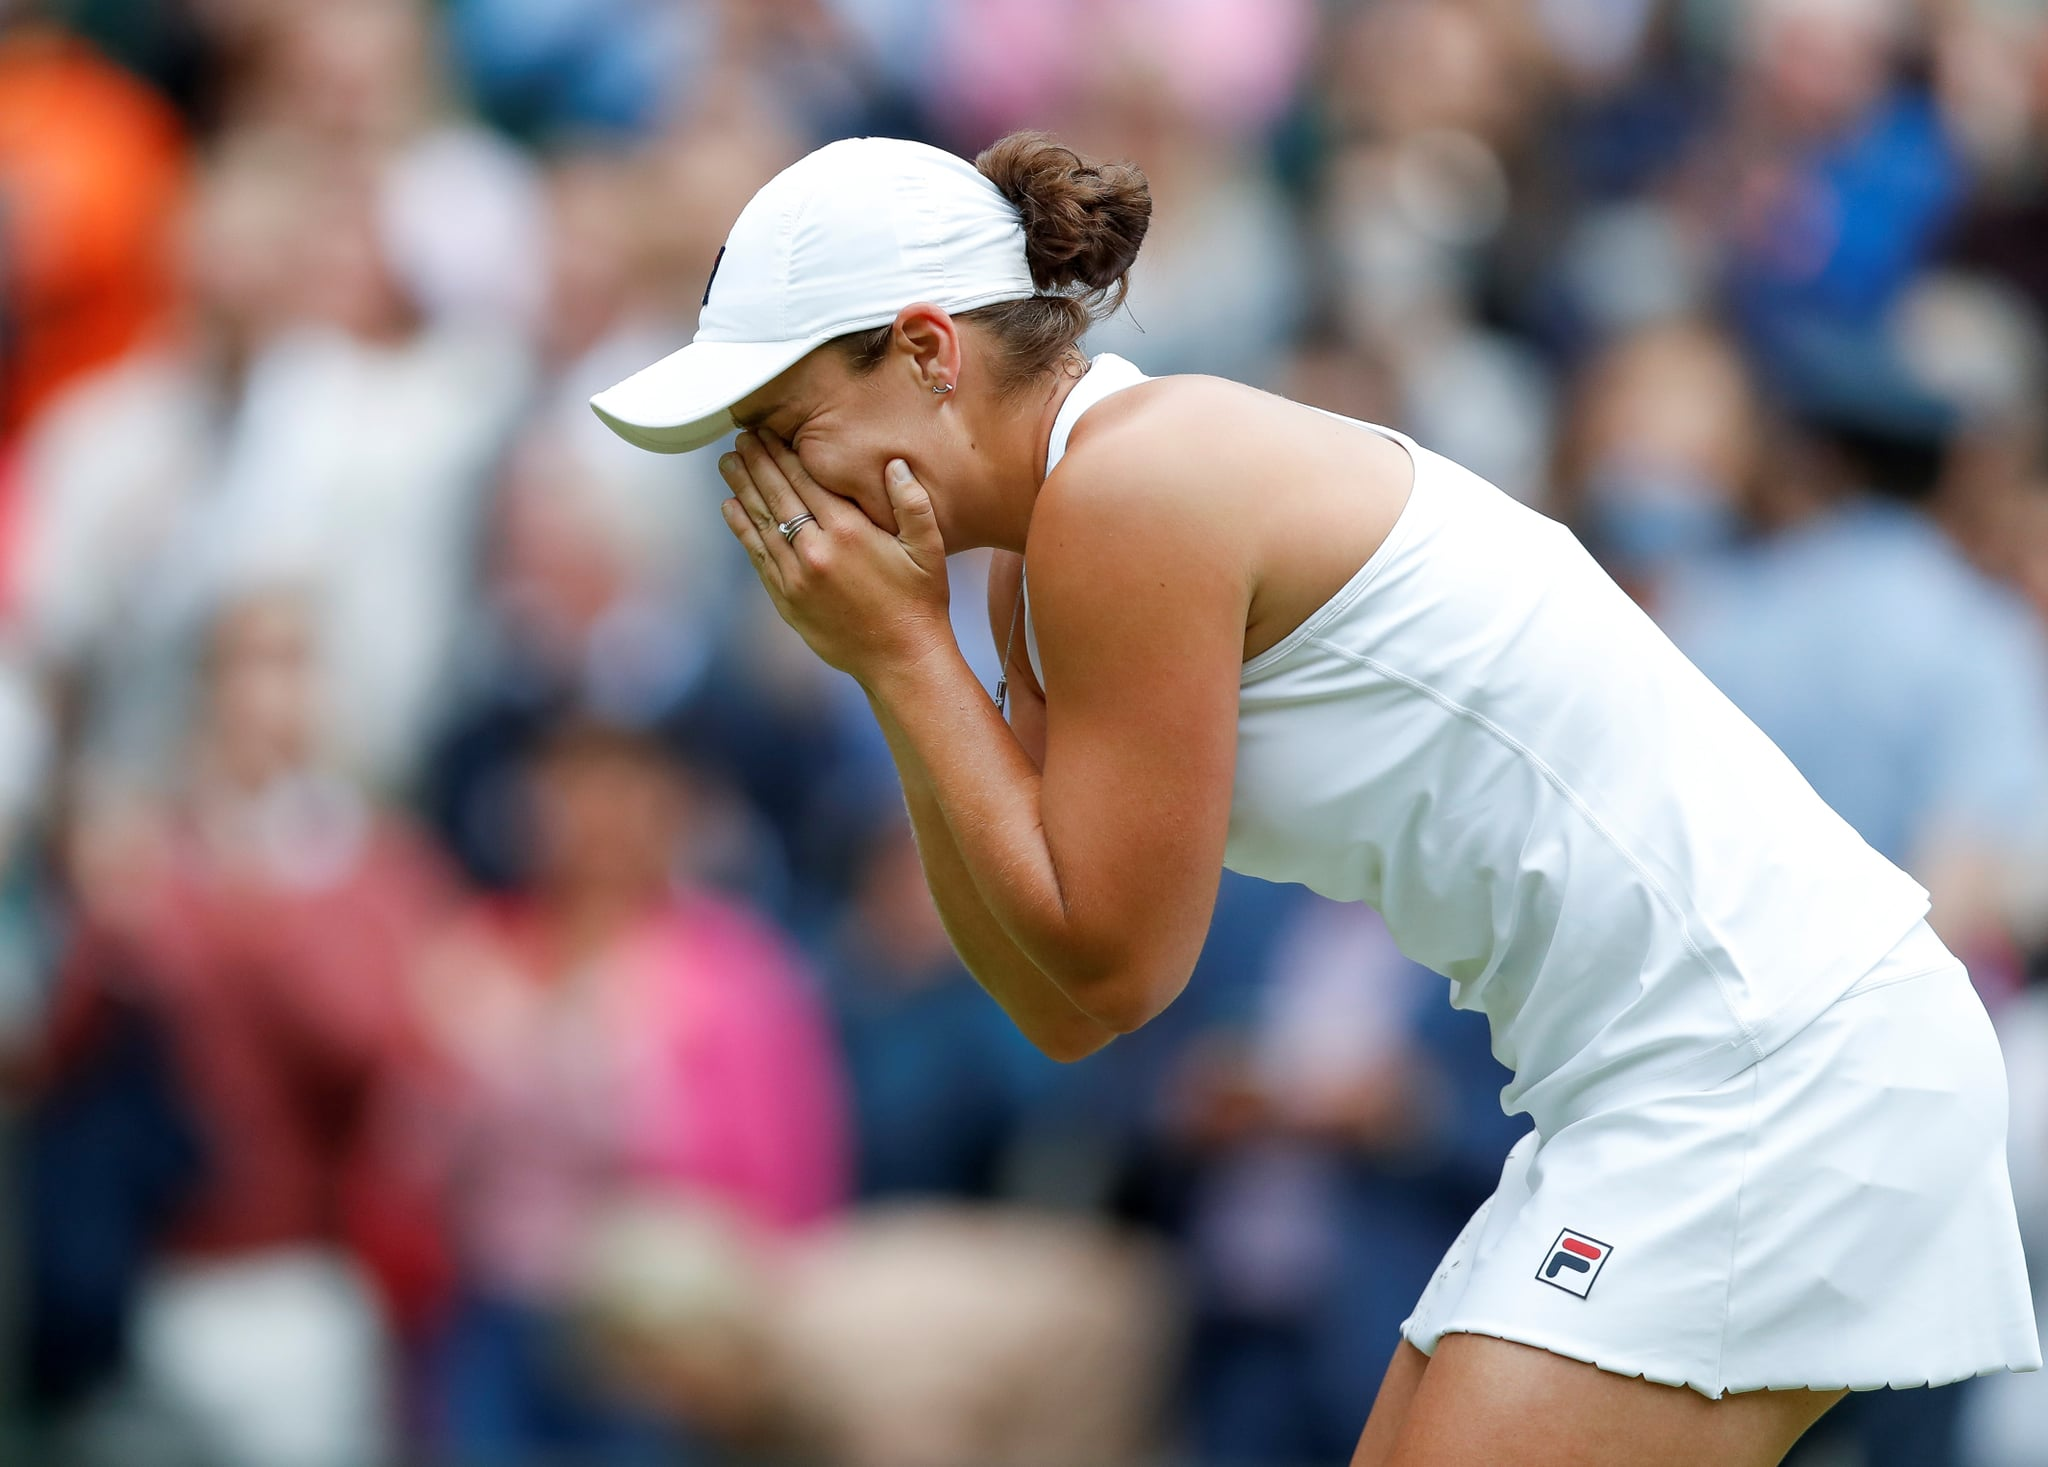 Ashleigh Barty of Australia celebrates after the women's singles final between Ashleigh Barty of Australia and Karolina Pliskova of the Czech Republic at Wimbledon tennis Championship in London, Britain, on July 10, 2021. (Photo by Han Yan/Xinhua via Getty Images)